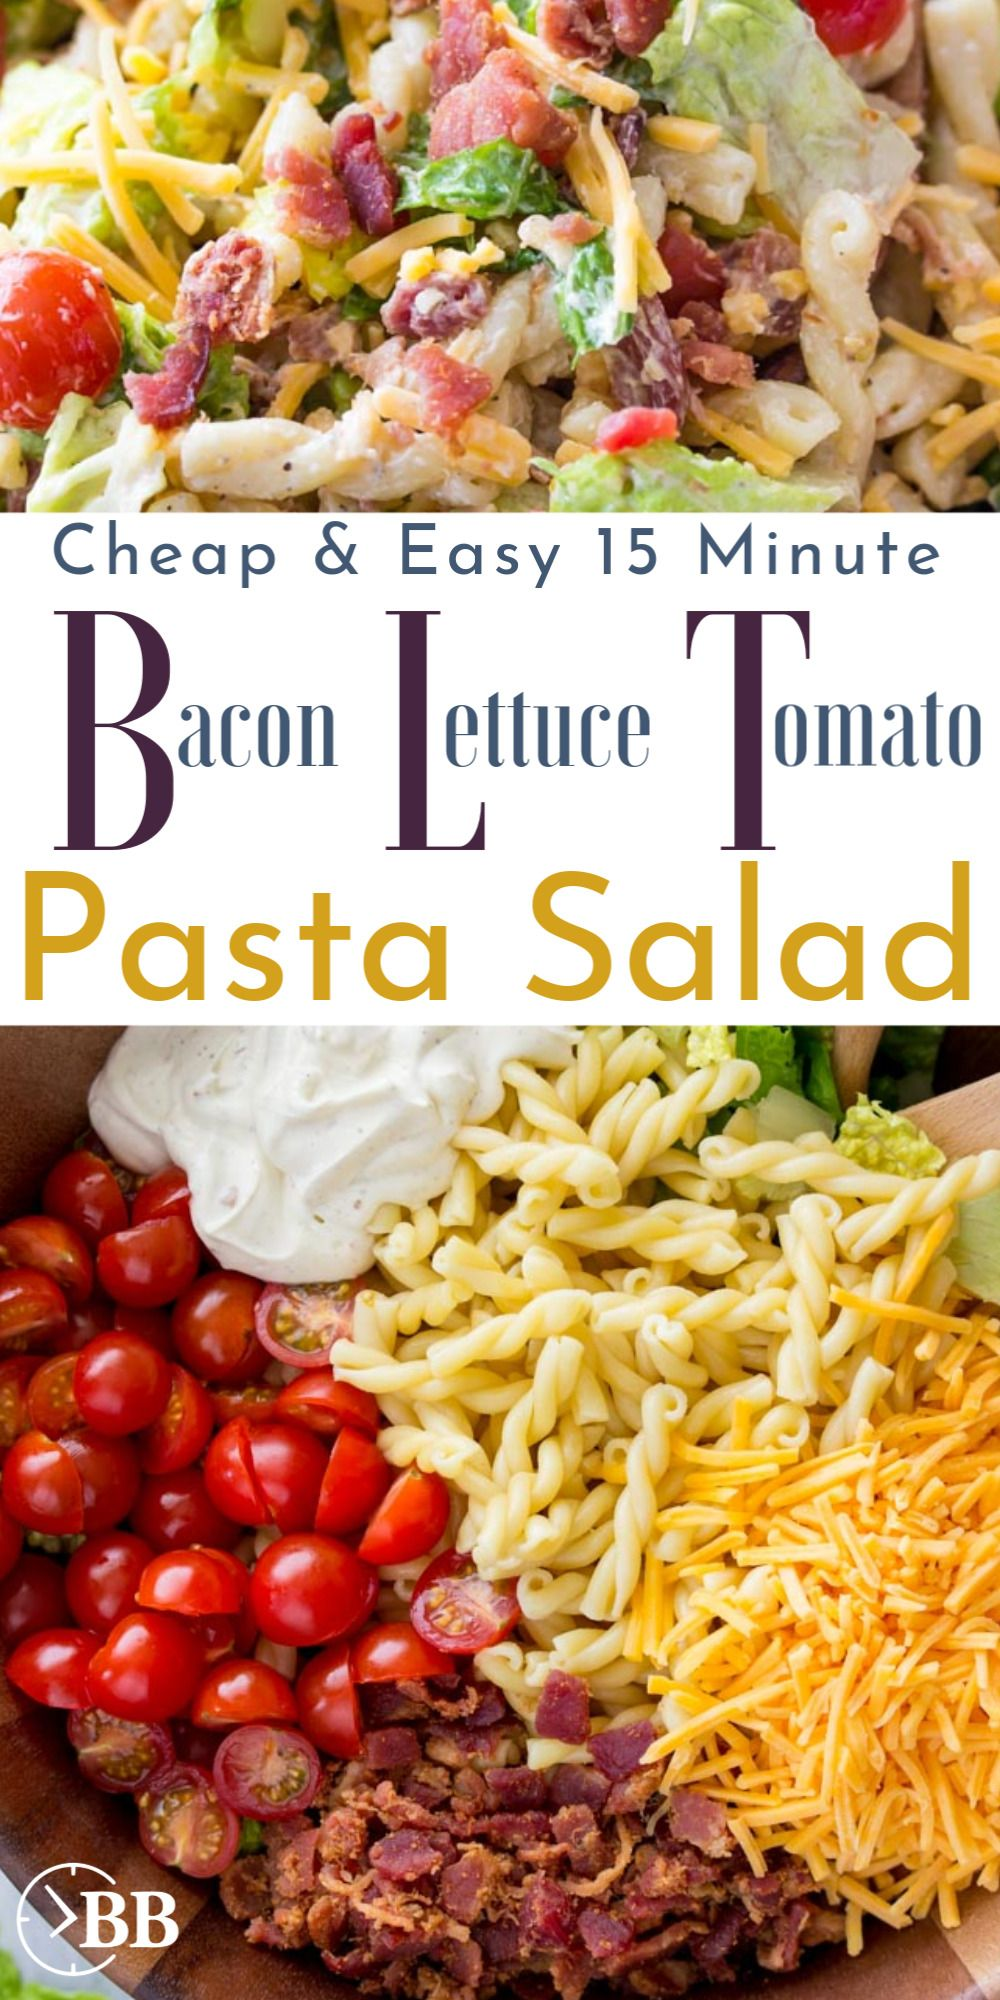 This 15 min bacon lettuce tomato pasta salad is the perfect quick summer pasta salad for parties or